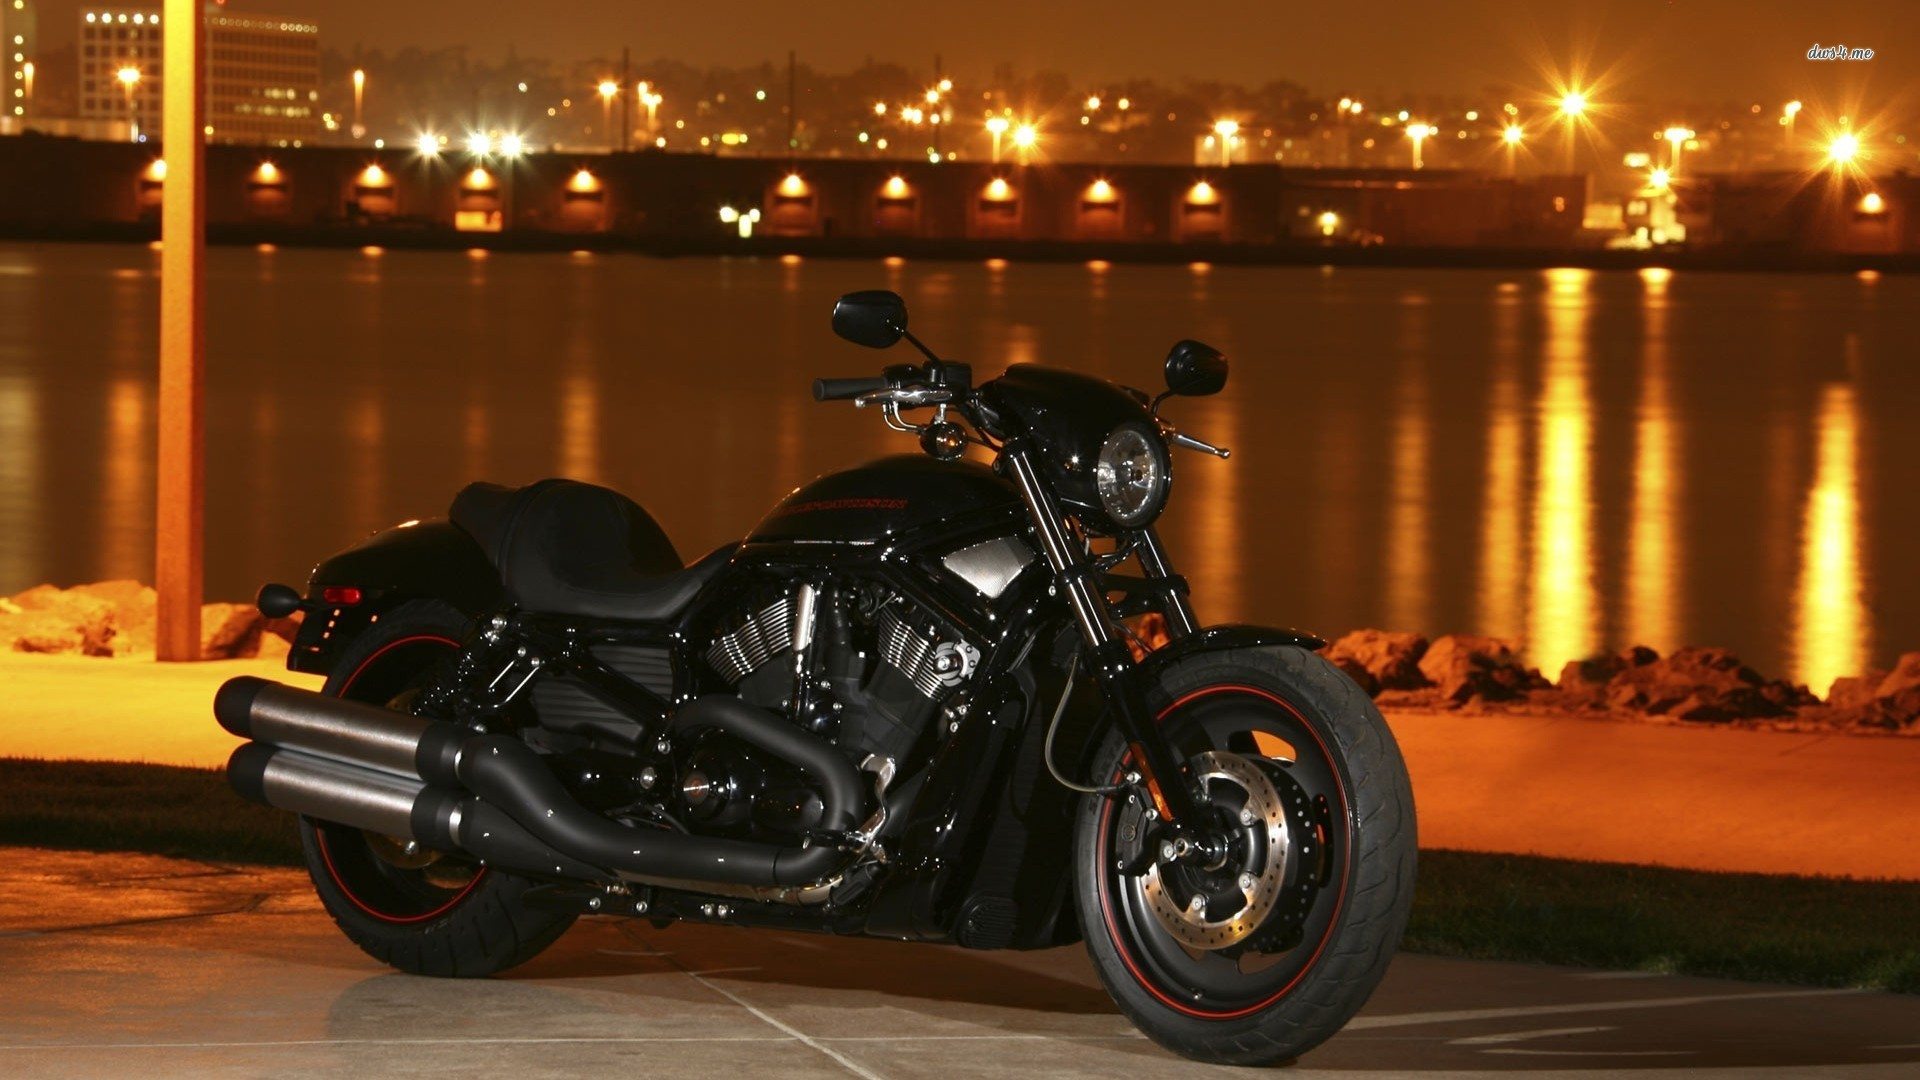 Black Motorcycle Harley Davidson Wallpaper Background Harley Davidson Night Rod 1920x1080 Download Hd Wallpaper Wallpapertip